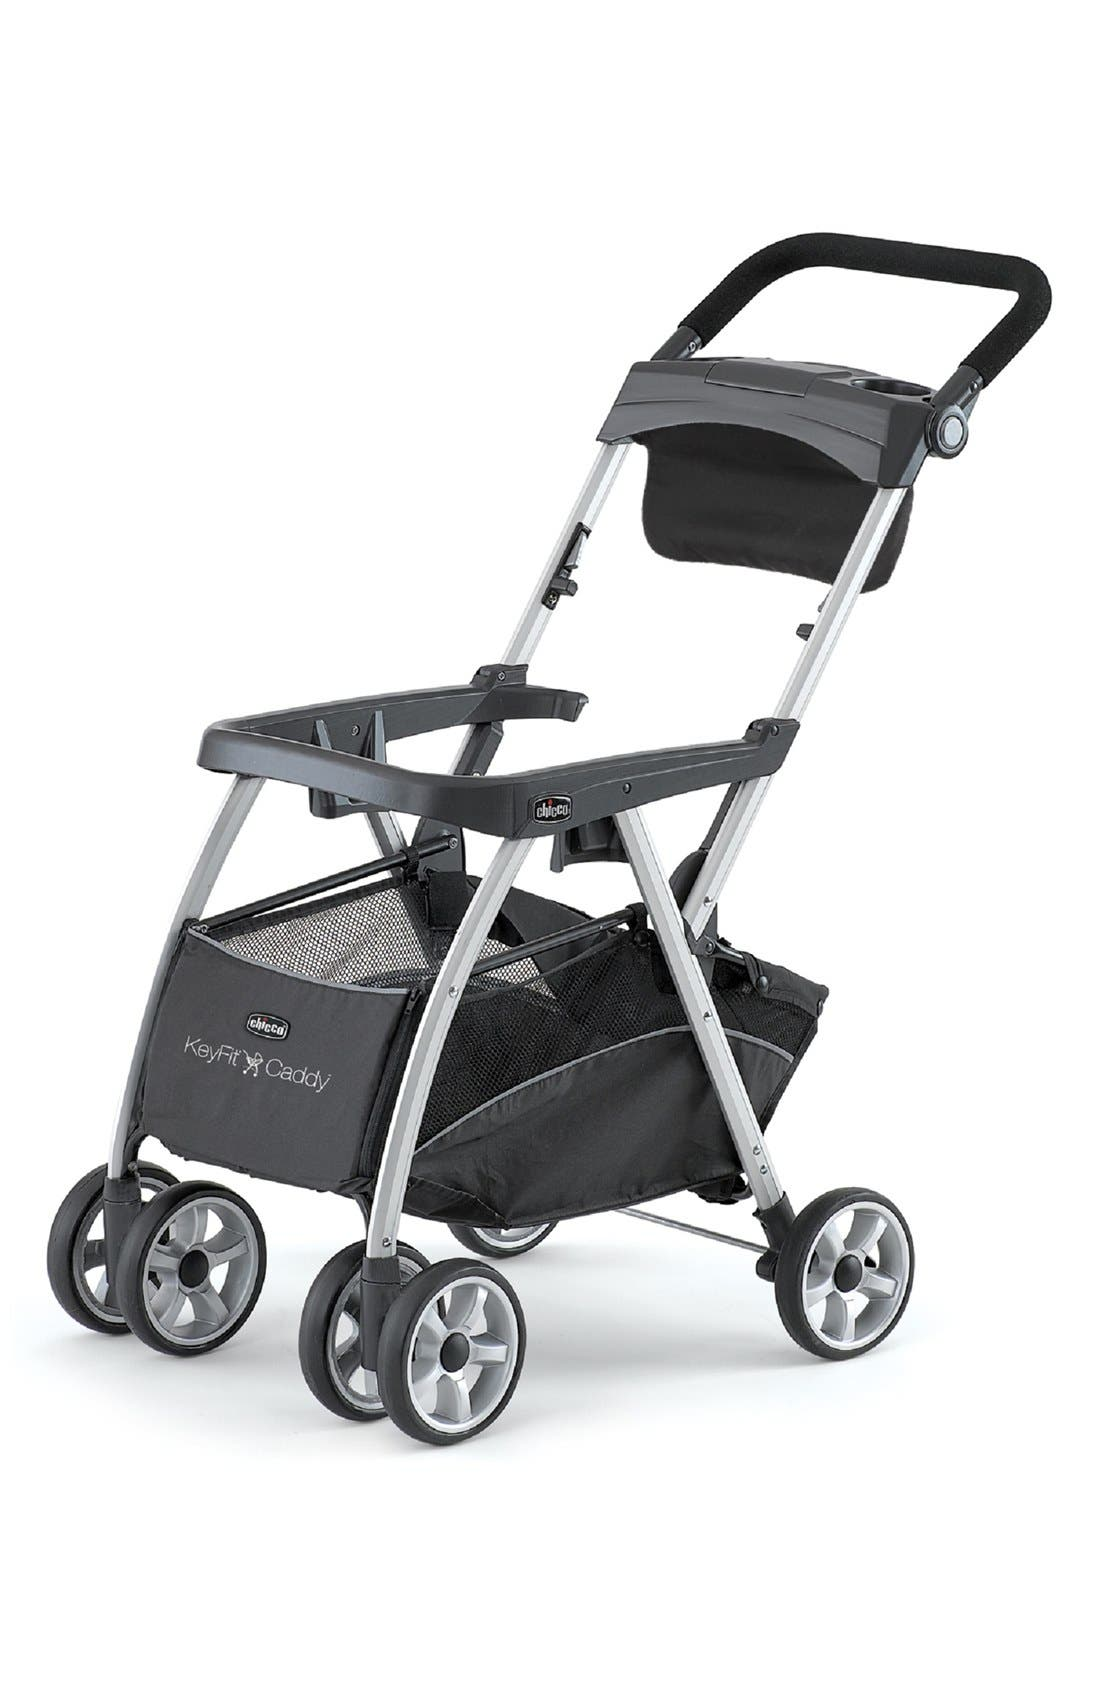 KeyFit<sup>®</sup> Caddy<sup>™</sup> Frame Stroller,                             Main thumbnail 1, color,                             BLACK